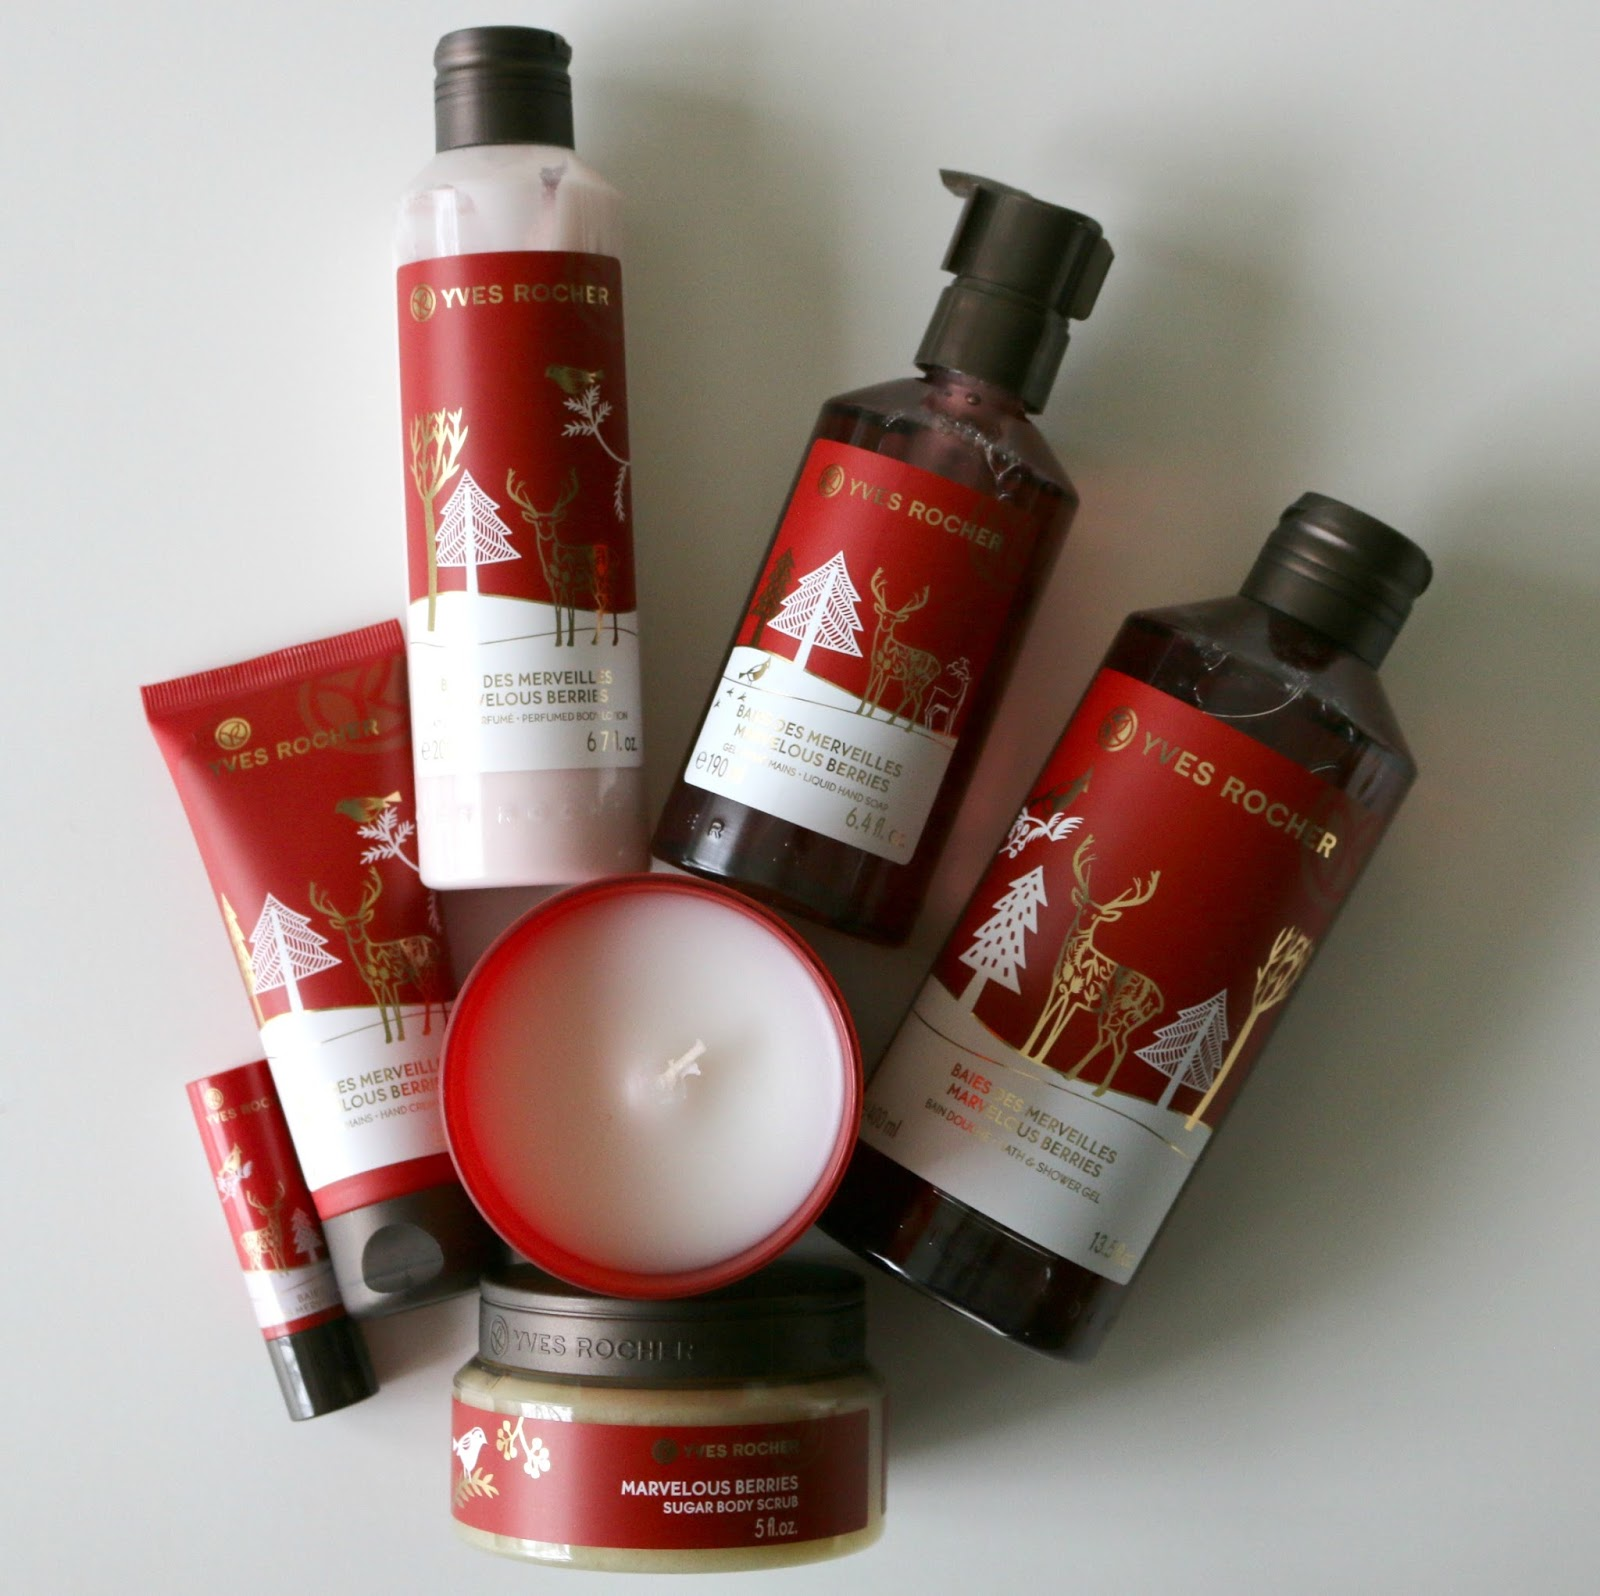 Yves Rocher Marvelous Berries Bath Body Christmas Collection